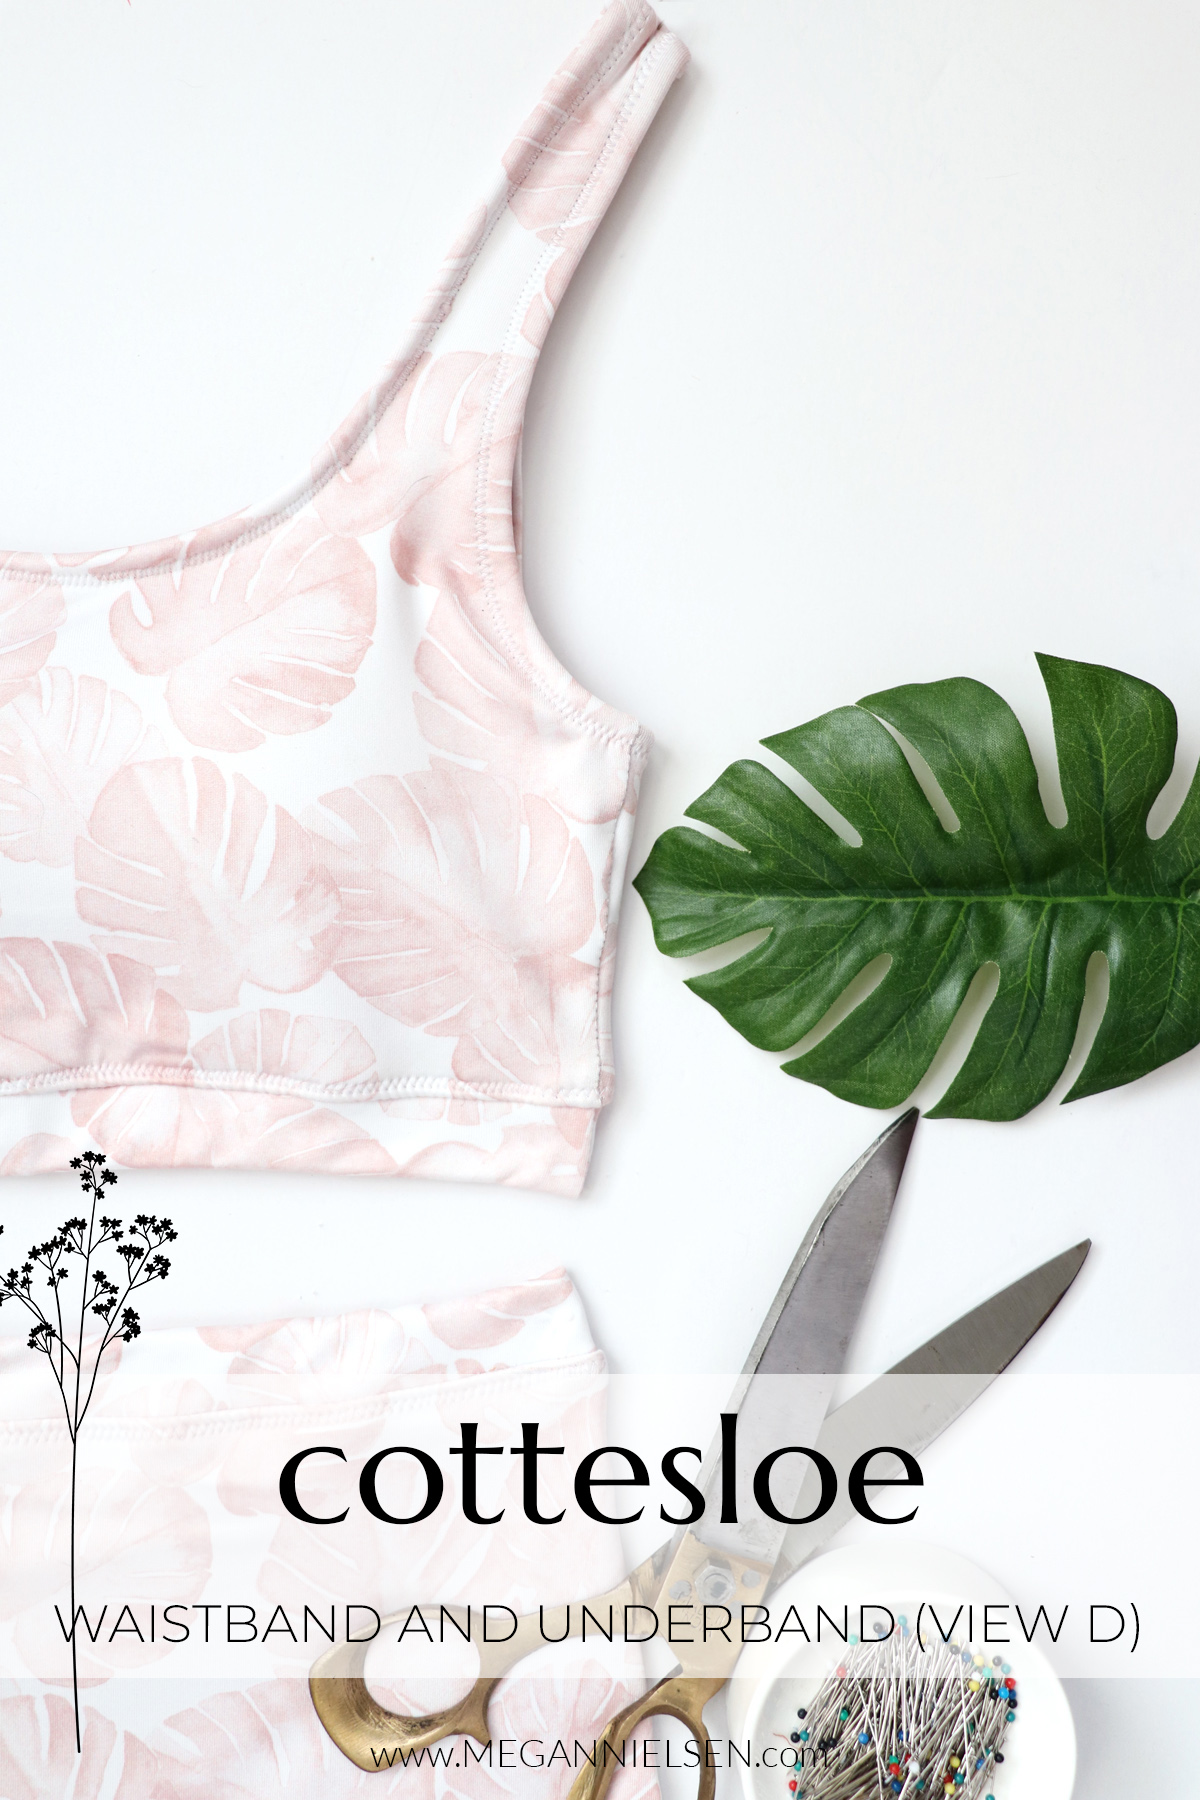 Cottesloe waistband and underband View D